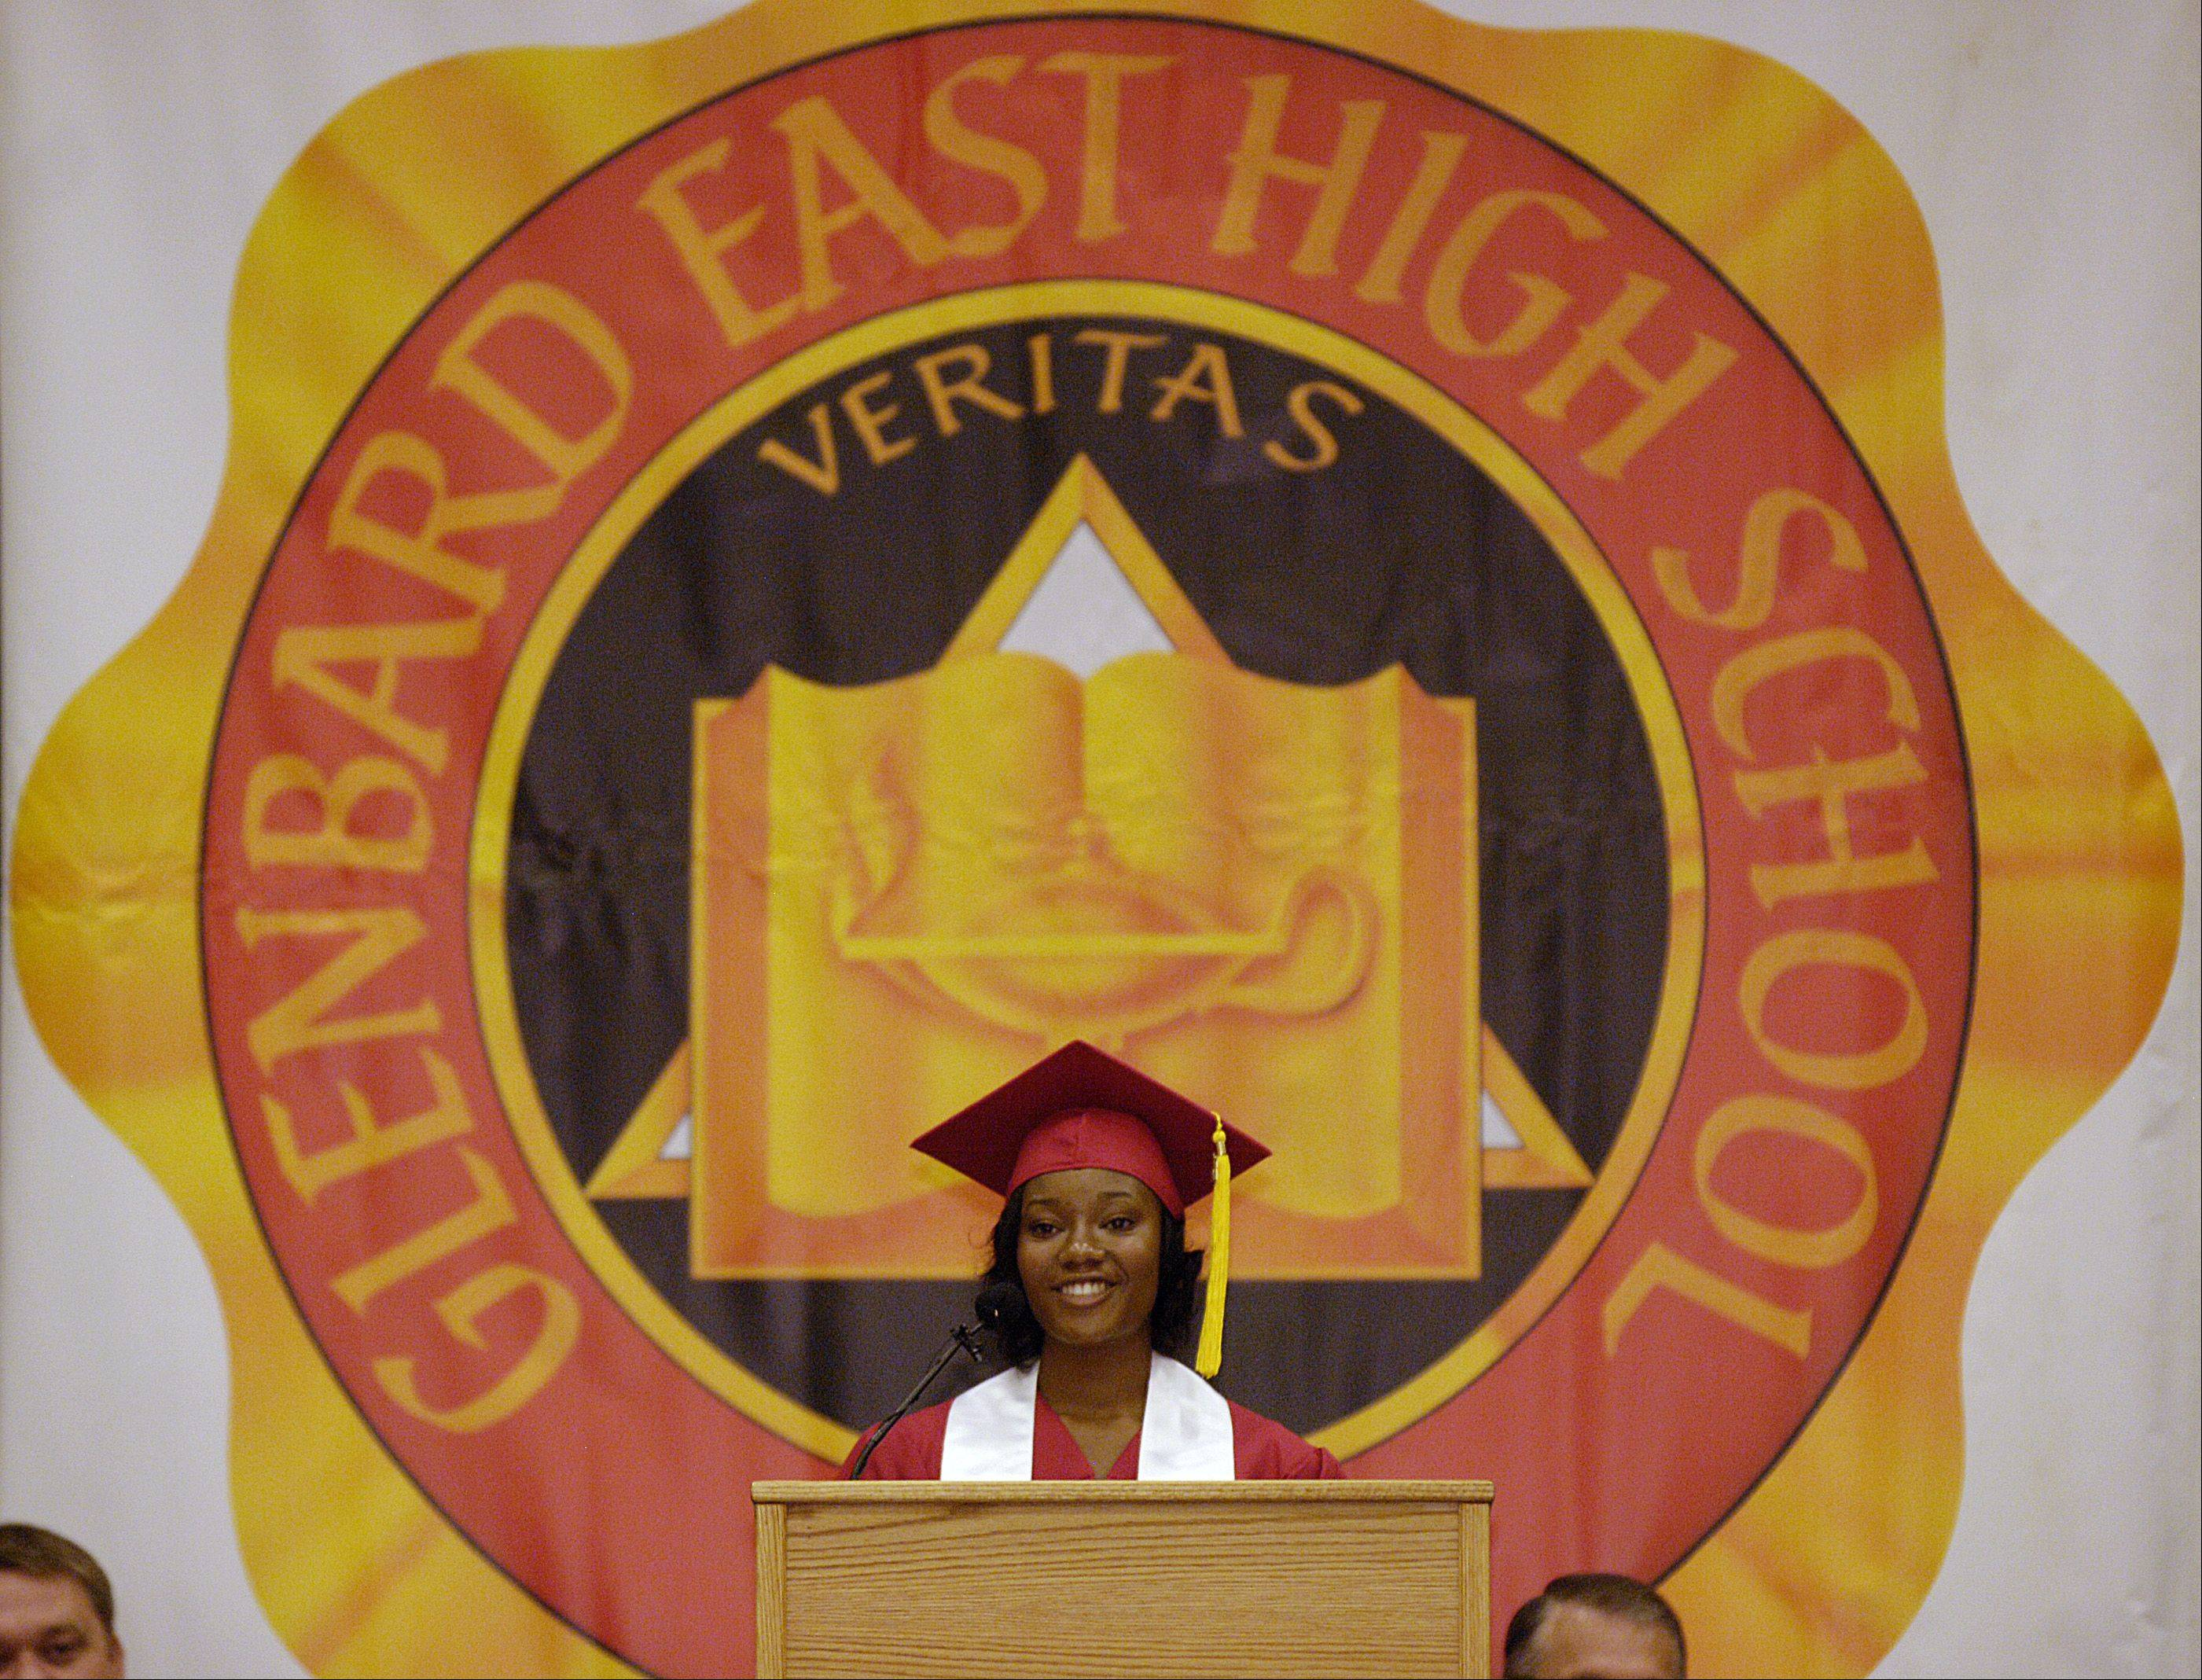 Nia Joiner gives the greetings from the Class of 2012 address during the Glenbard East High School graduation ceremony, Sunday June 3 at the College of DuPage in Glen Ellyn.